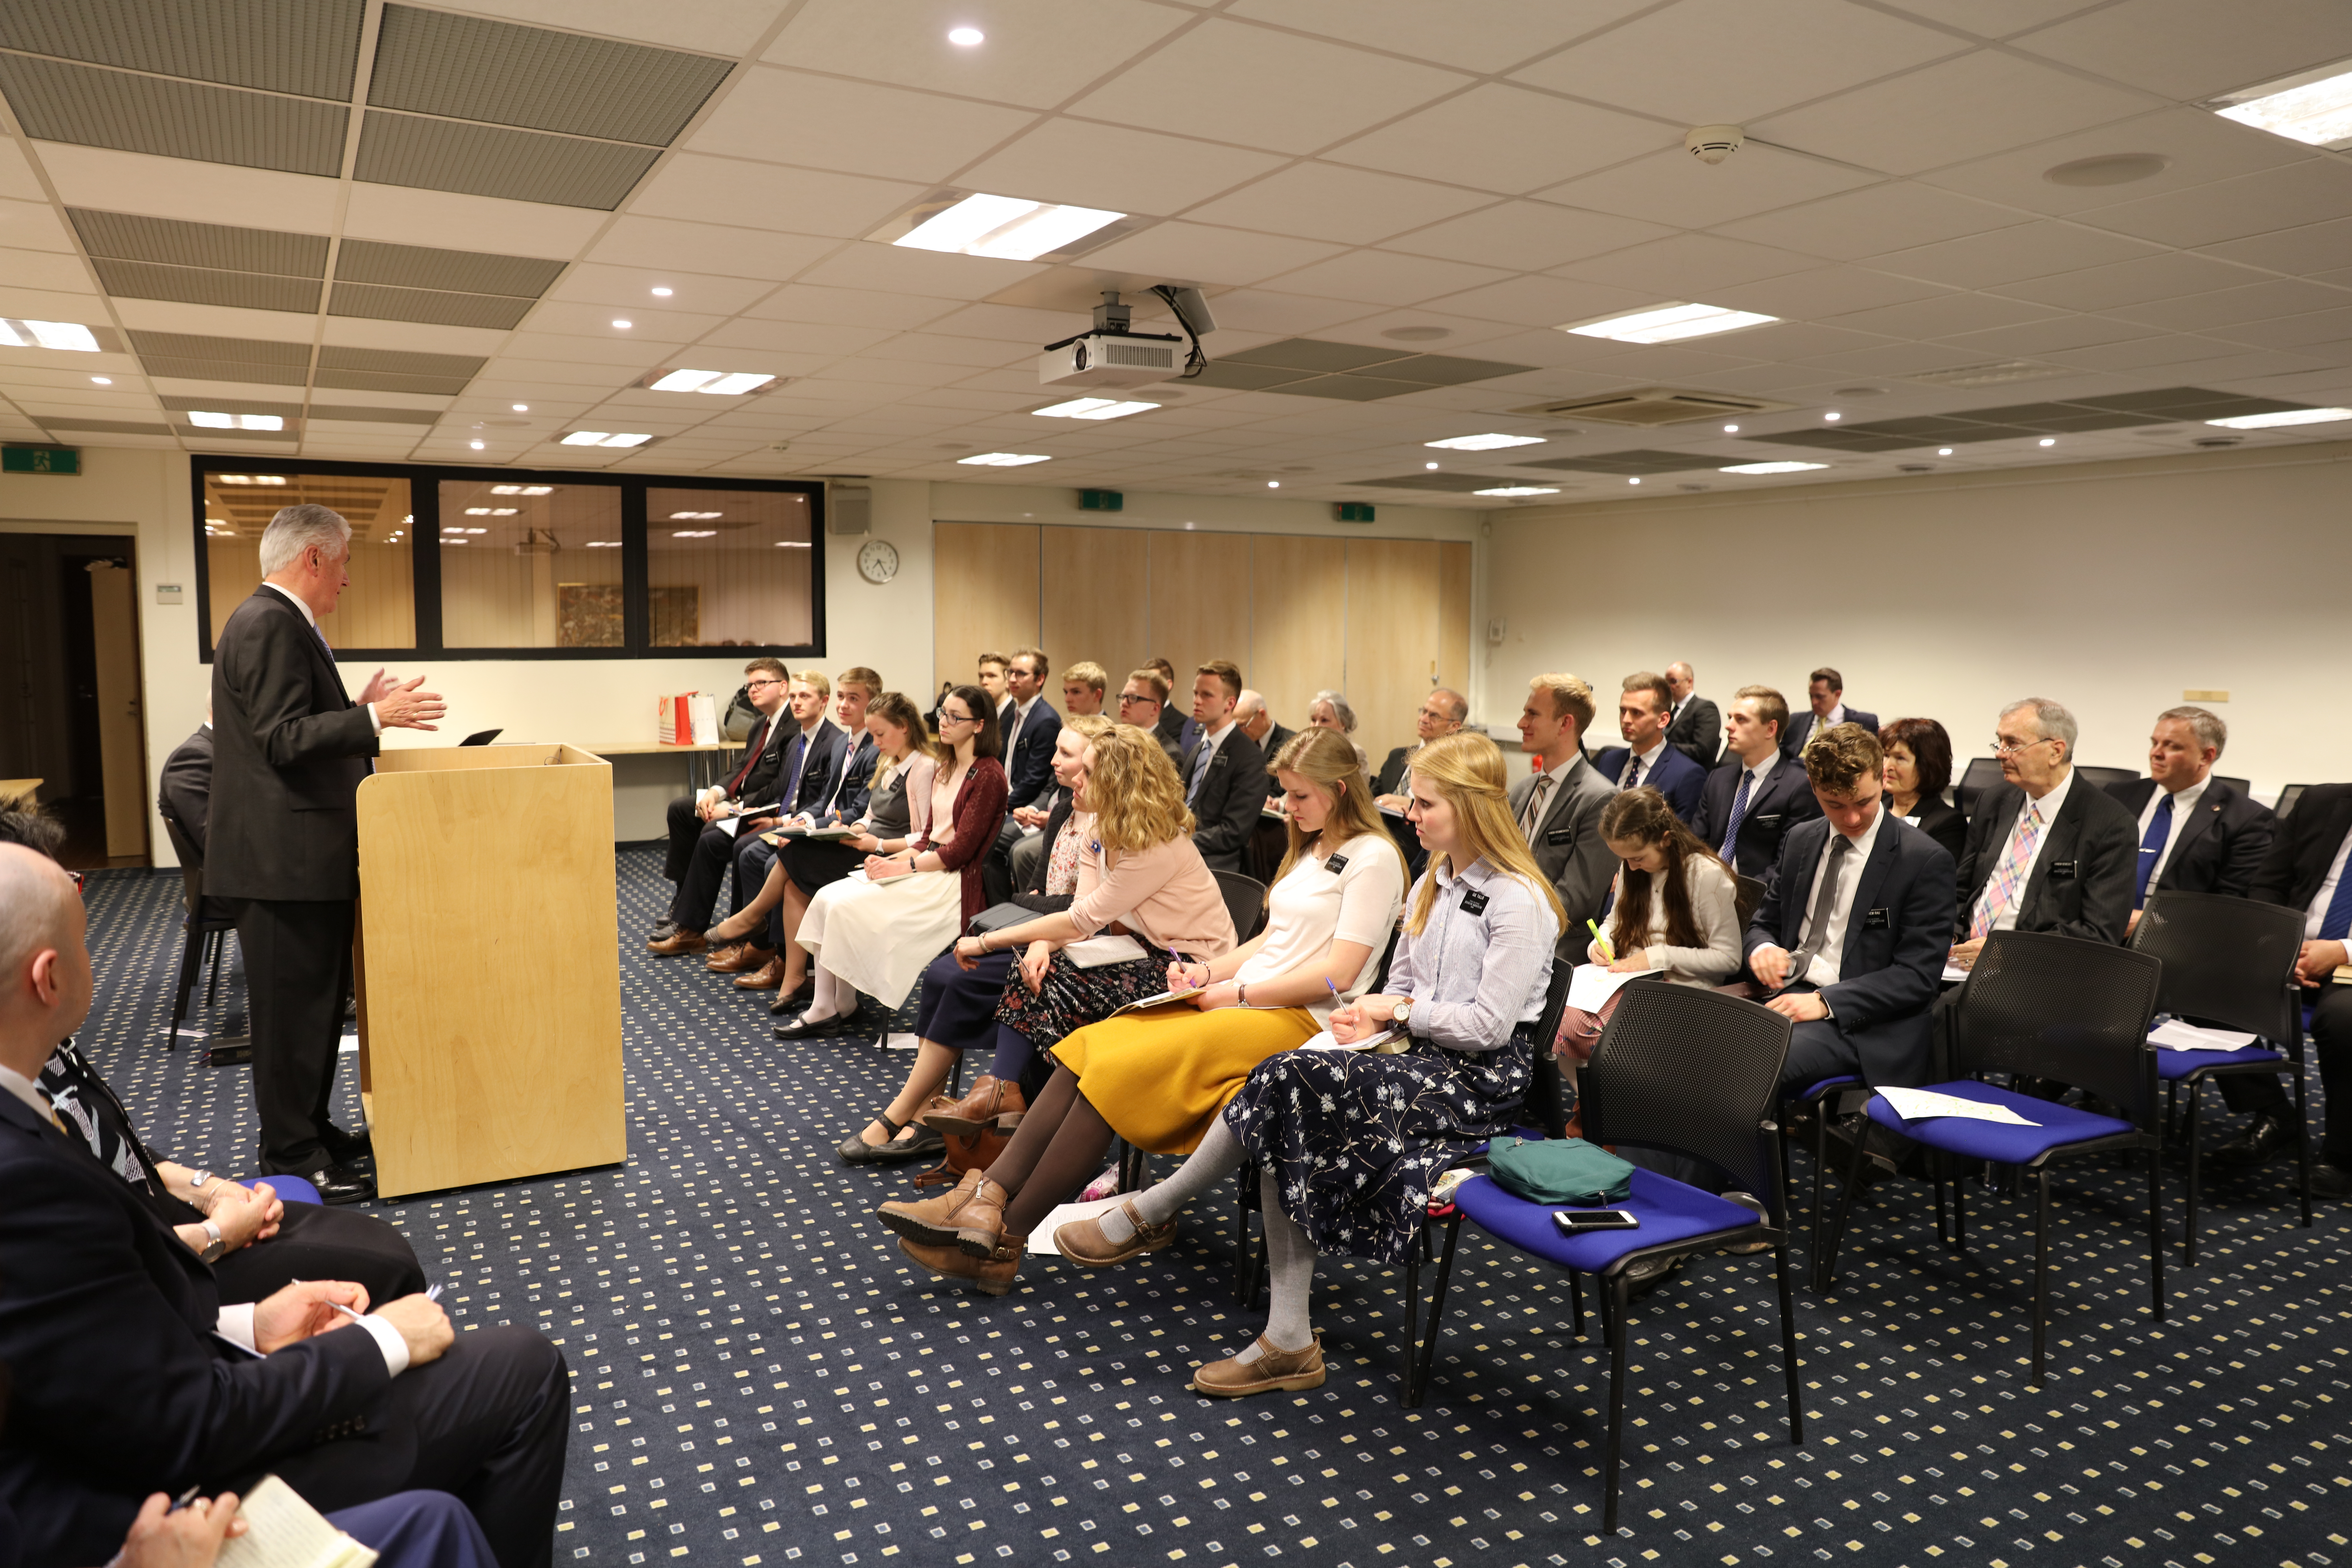 Elder Dieter F. Uchtdorf of the Quorum of the Twelve Apostles, standing at the podium, speaks to missionaries of the Baltic Mission in an April 28, 2018, meeting in Tallinn, Estonia.